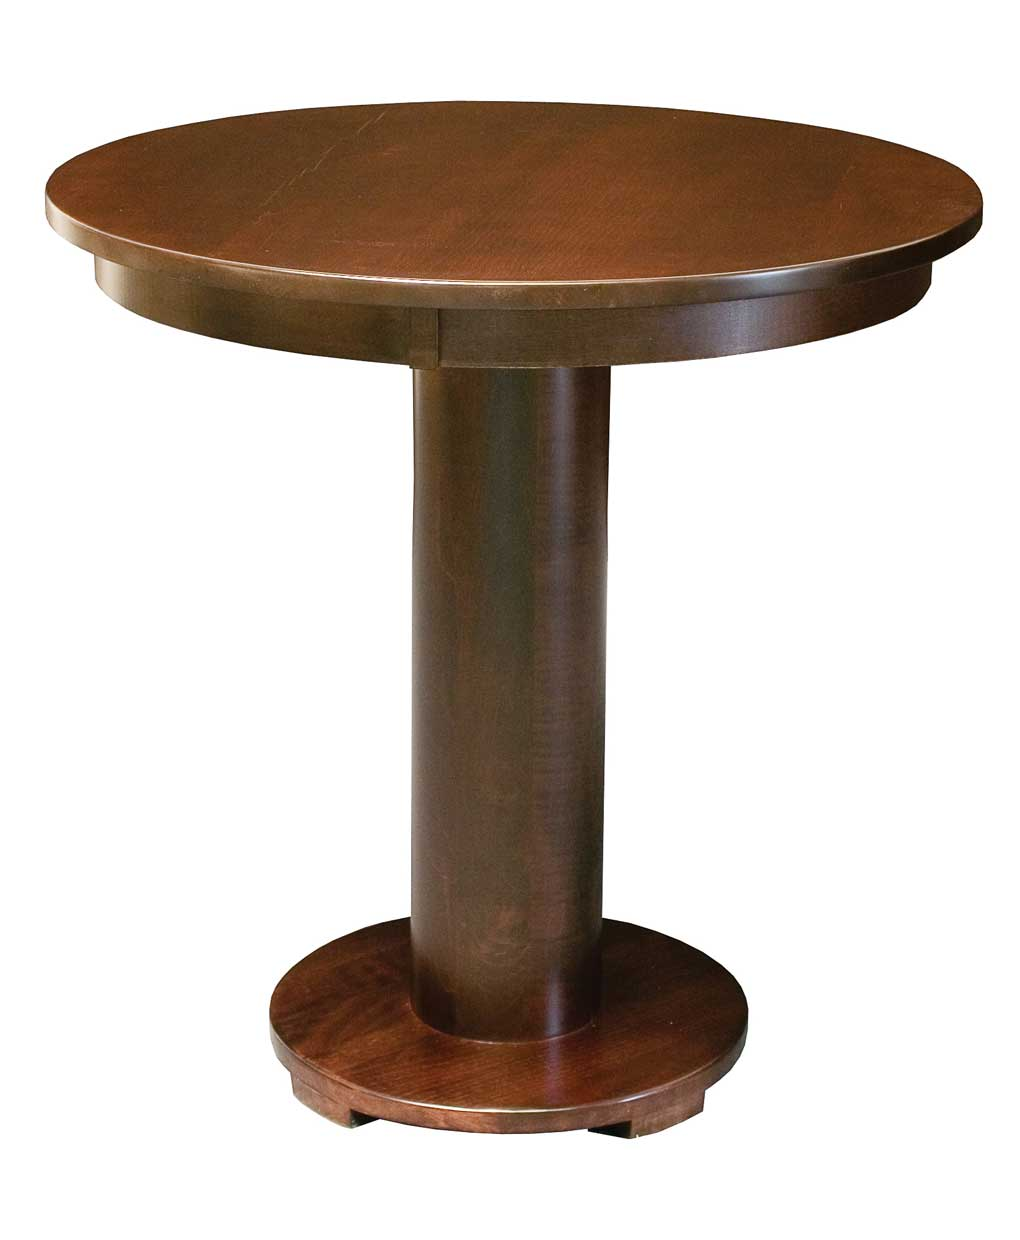 Small Size Dining Table Cafe Table Coffee Table Restaurant: Barrel Bistro Dining Table